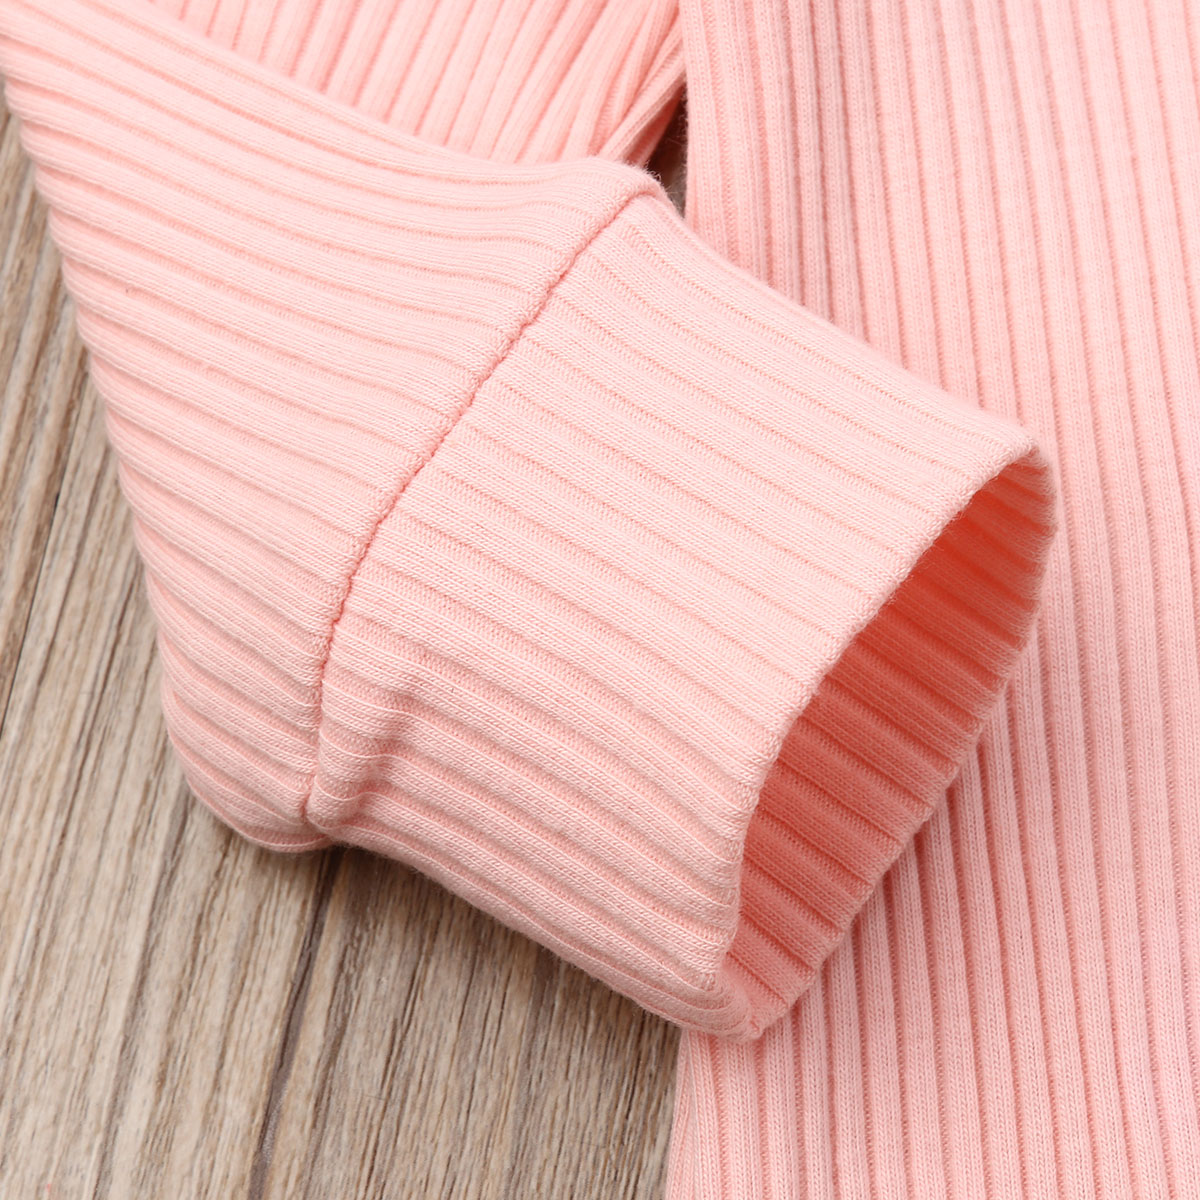 H5ad032d723fa46fb97640ec266e0247cd Spring Fall Newborn Baby Girl Boy Clothes Long Sleeve Knitted Romper + Headband Jumpsuit 2PCS Outfit 0-24M